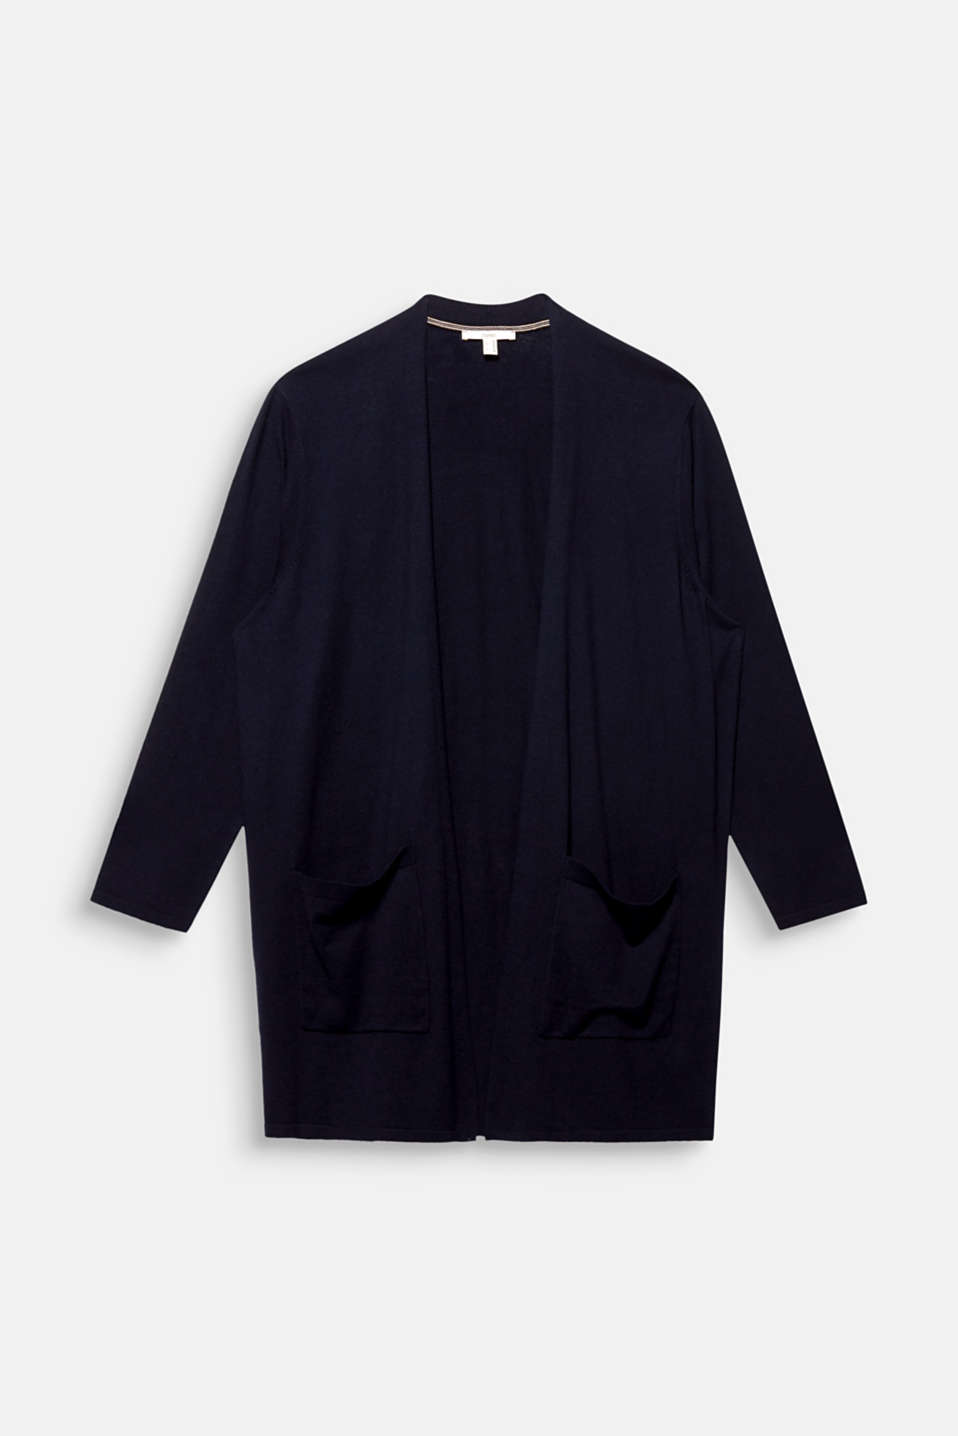 CURVY with linen: cardigan, NAVY, detail image number 5